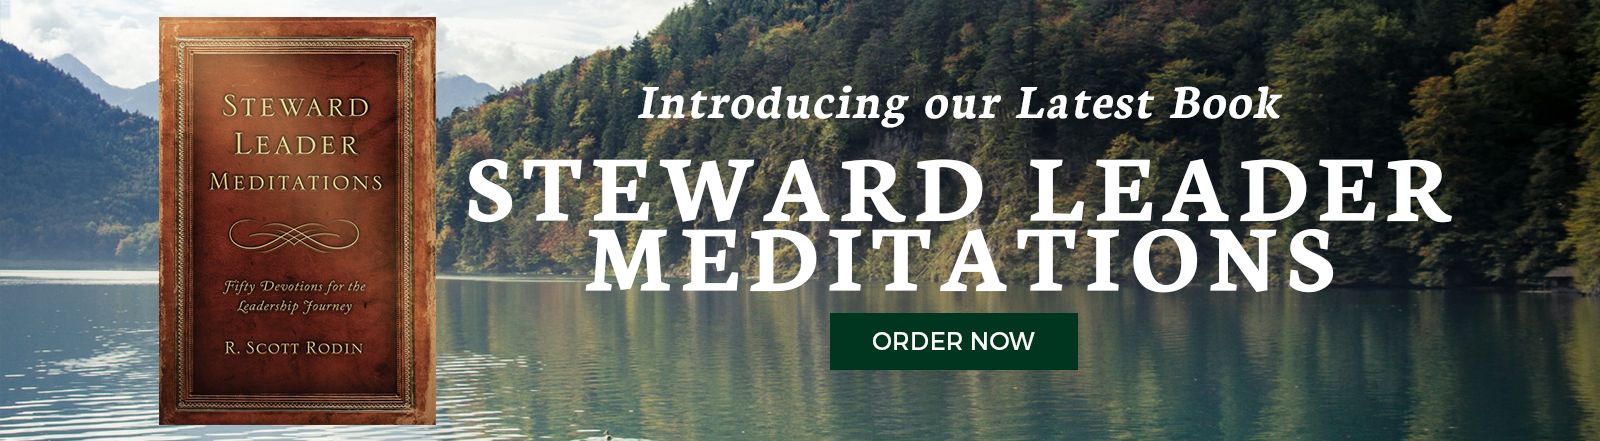 Steward Leader Meditations